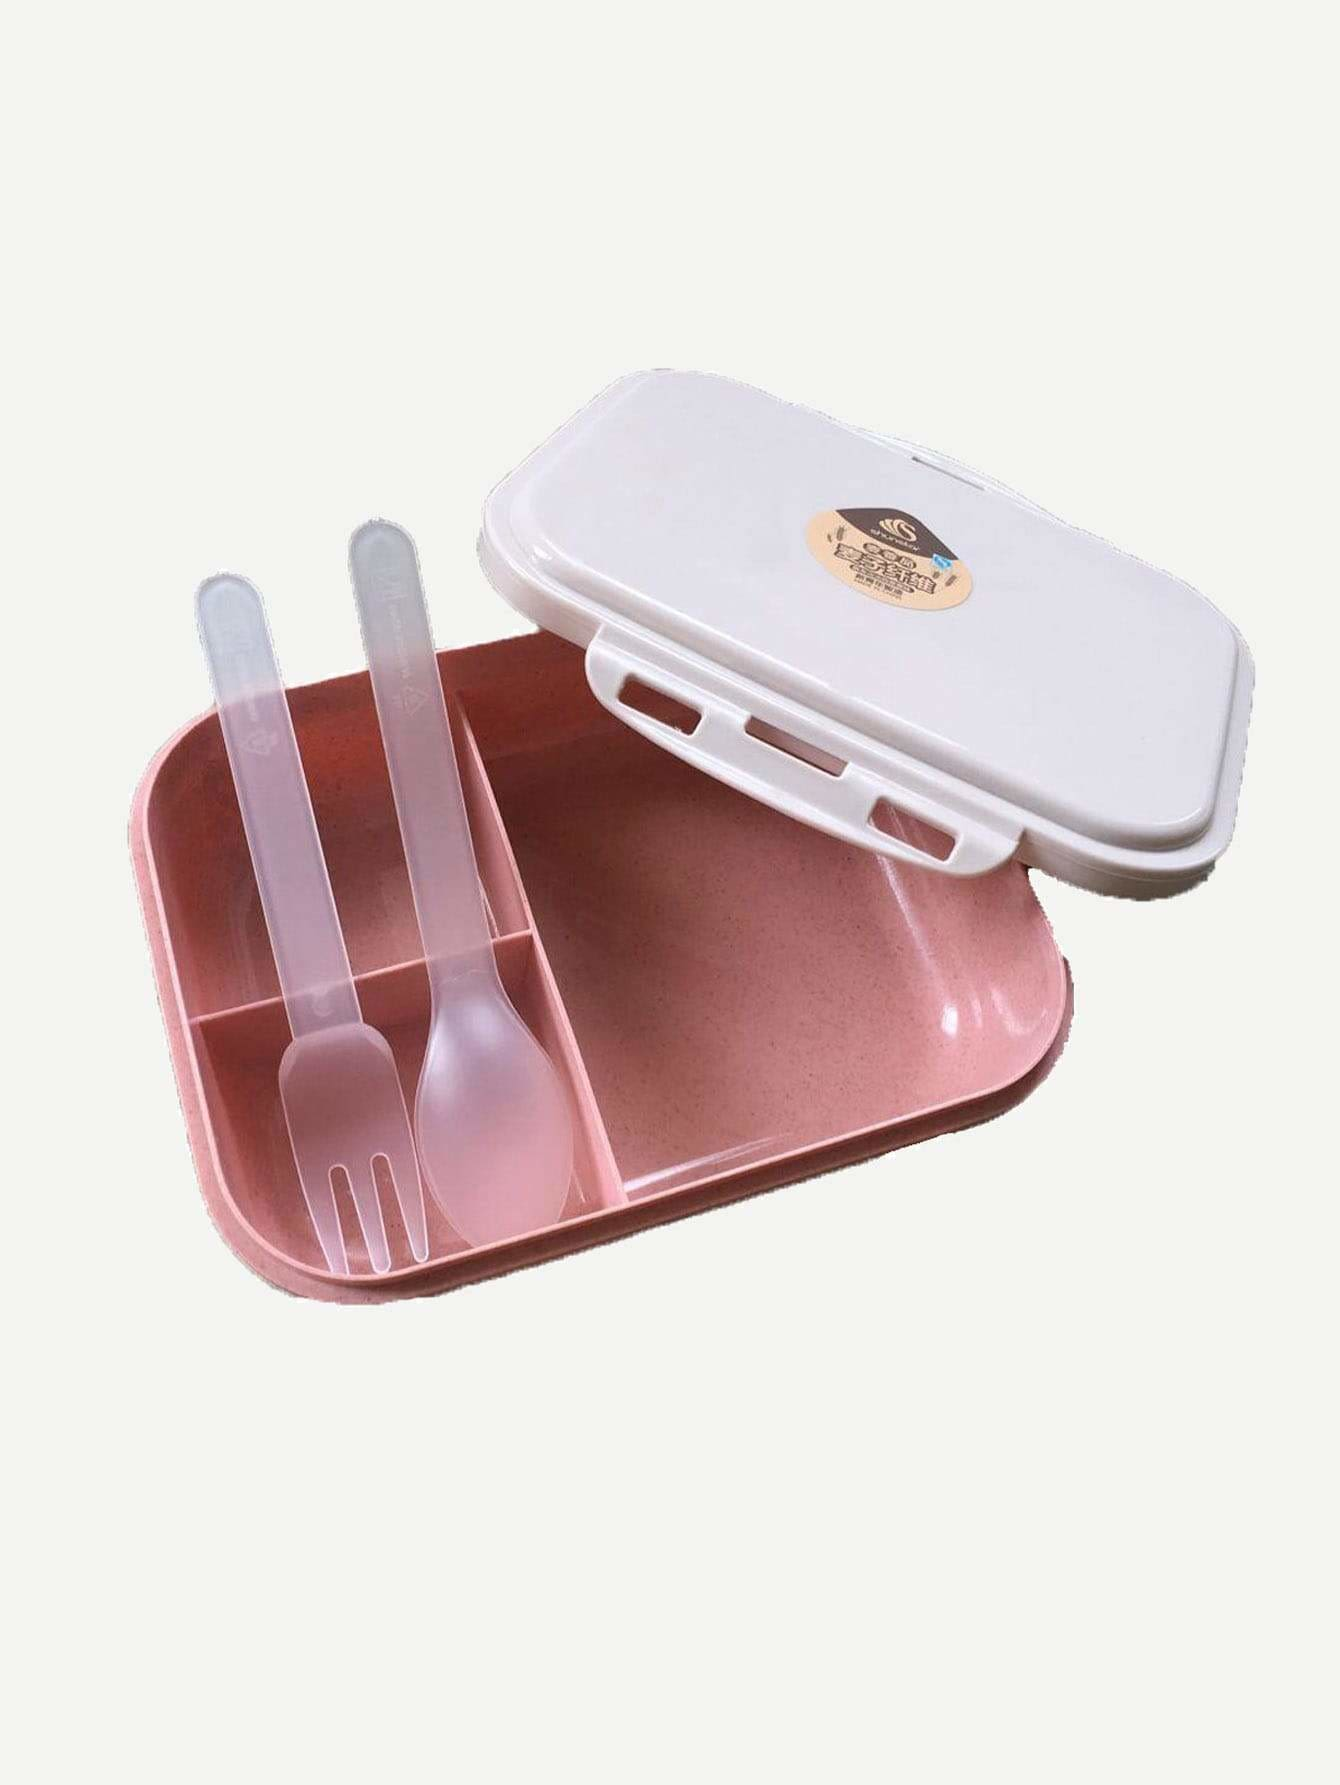 Lunch Box & Spoon 1Pc & Fork 1Pc - One-Size / One Color - Dining